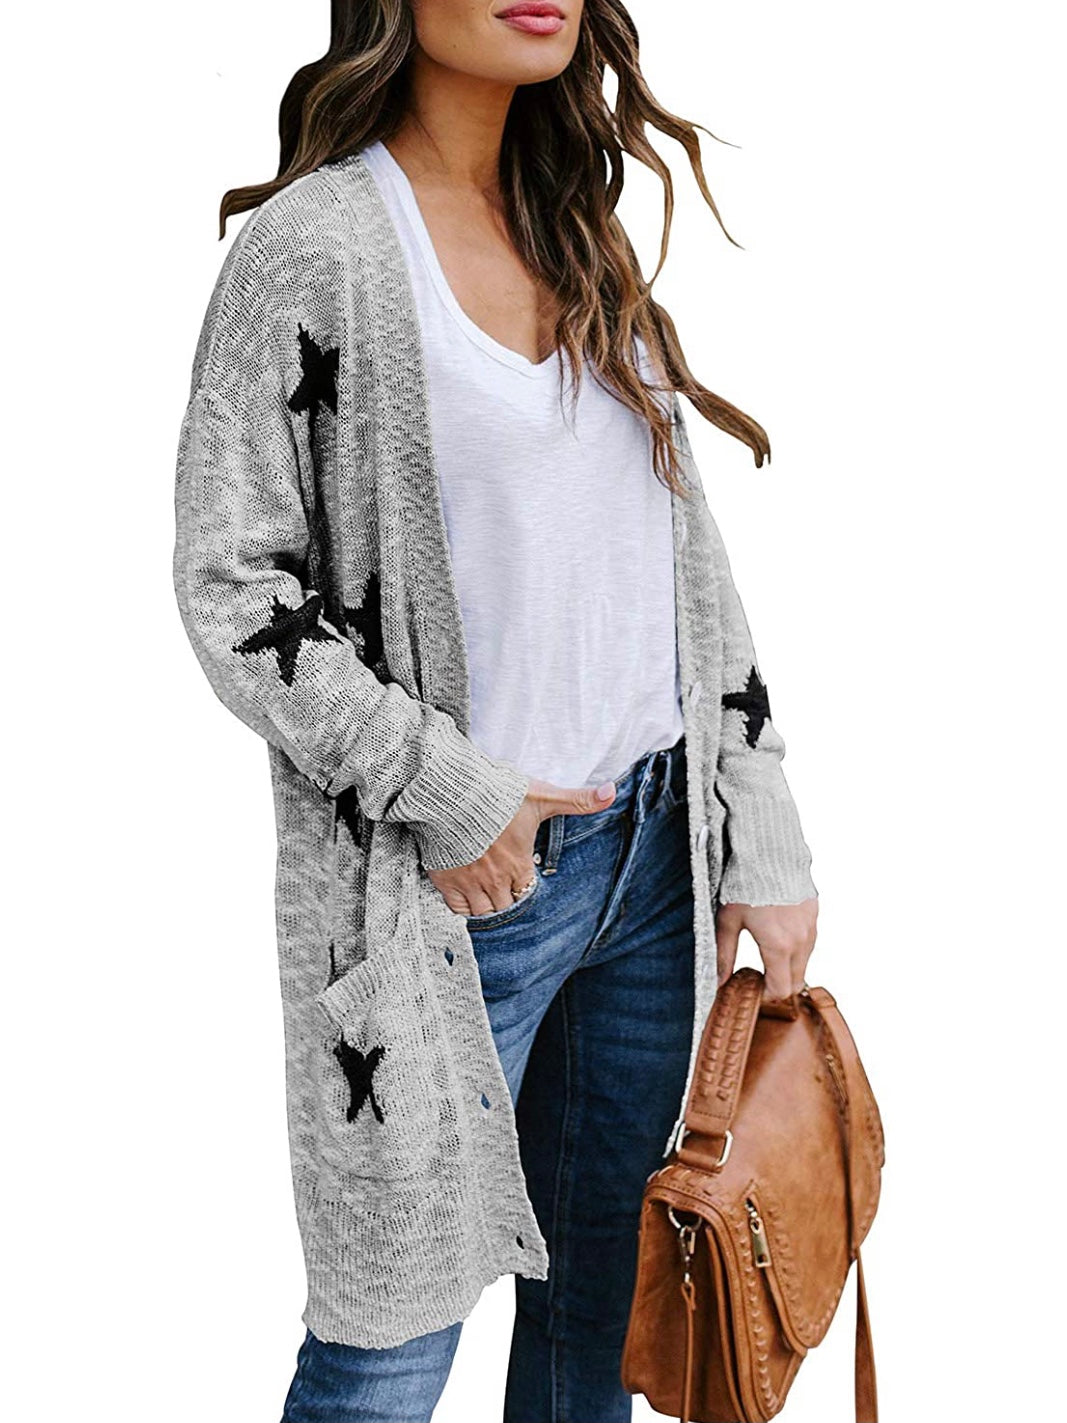 Stars Cardigan Gray Sweater